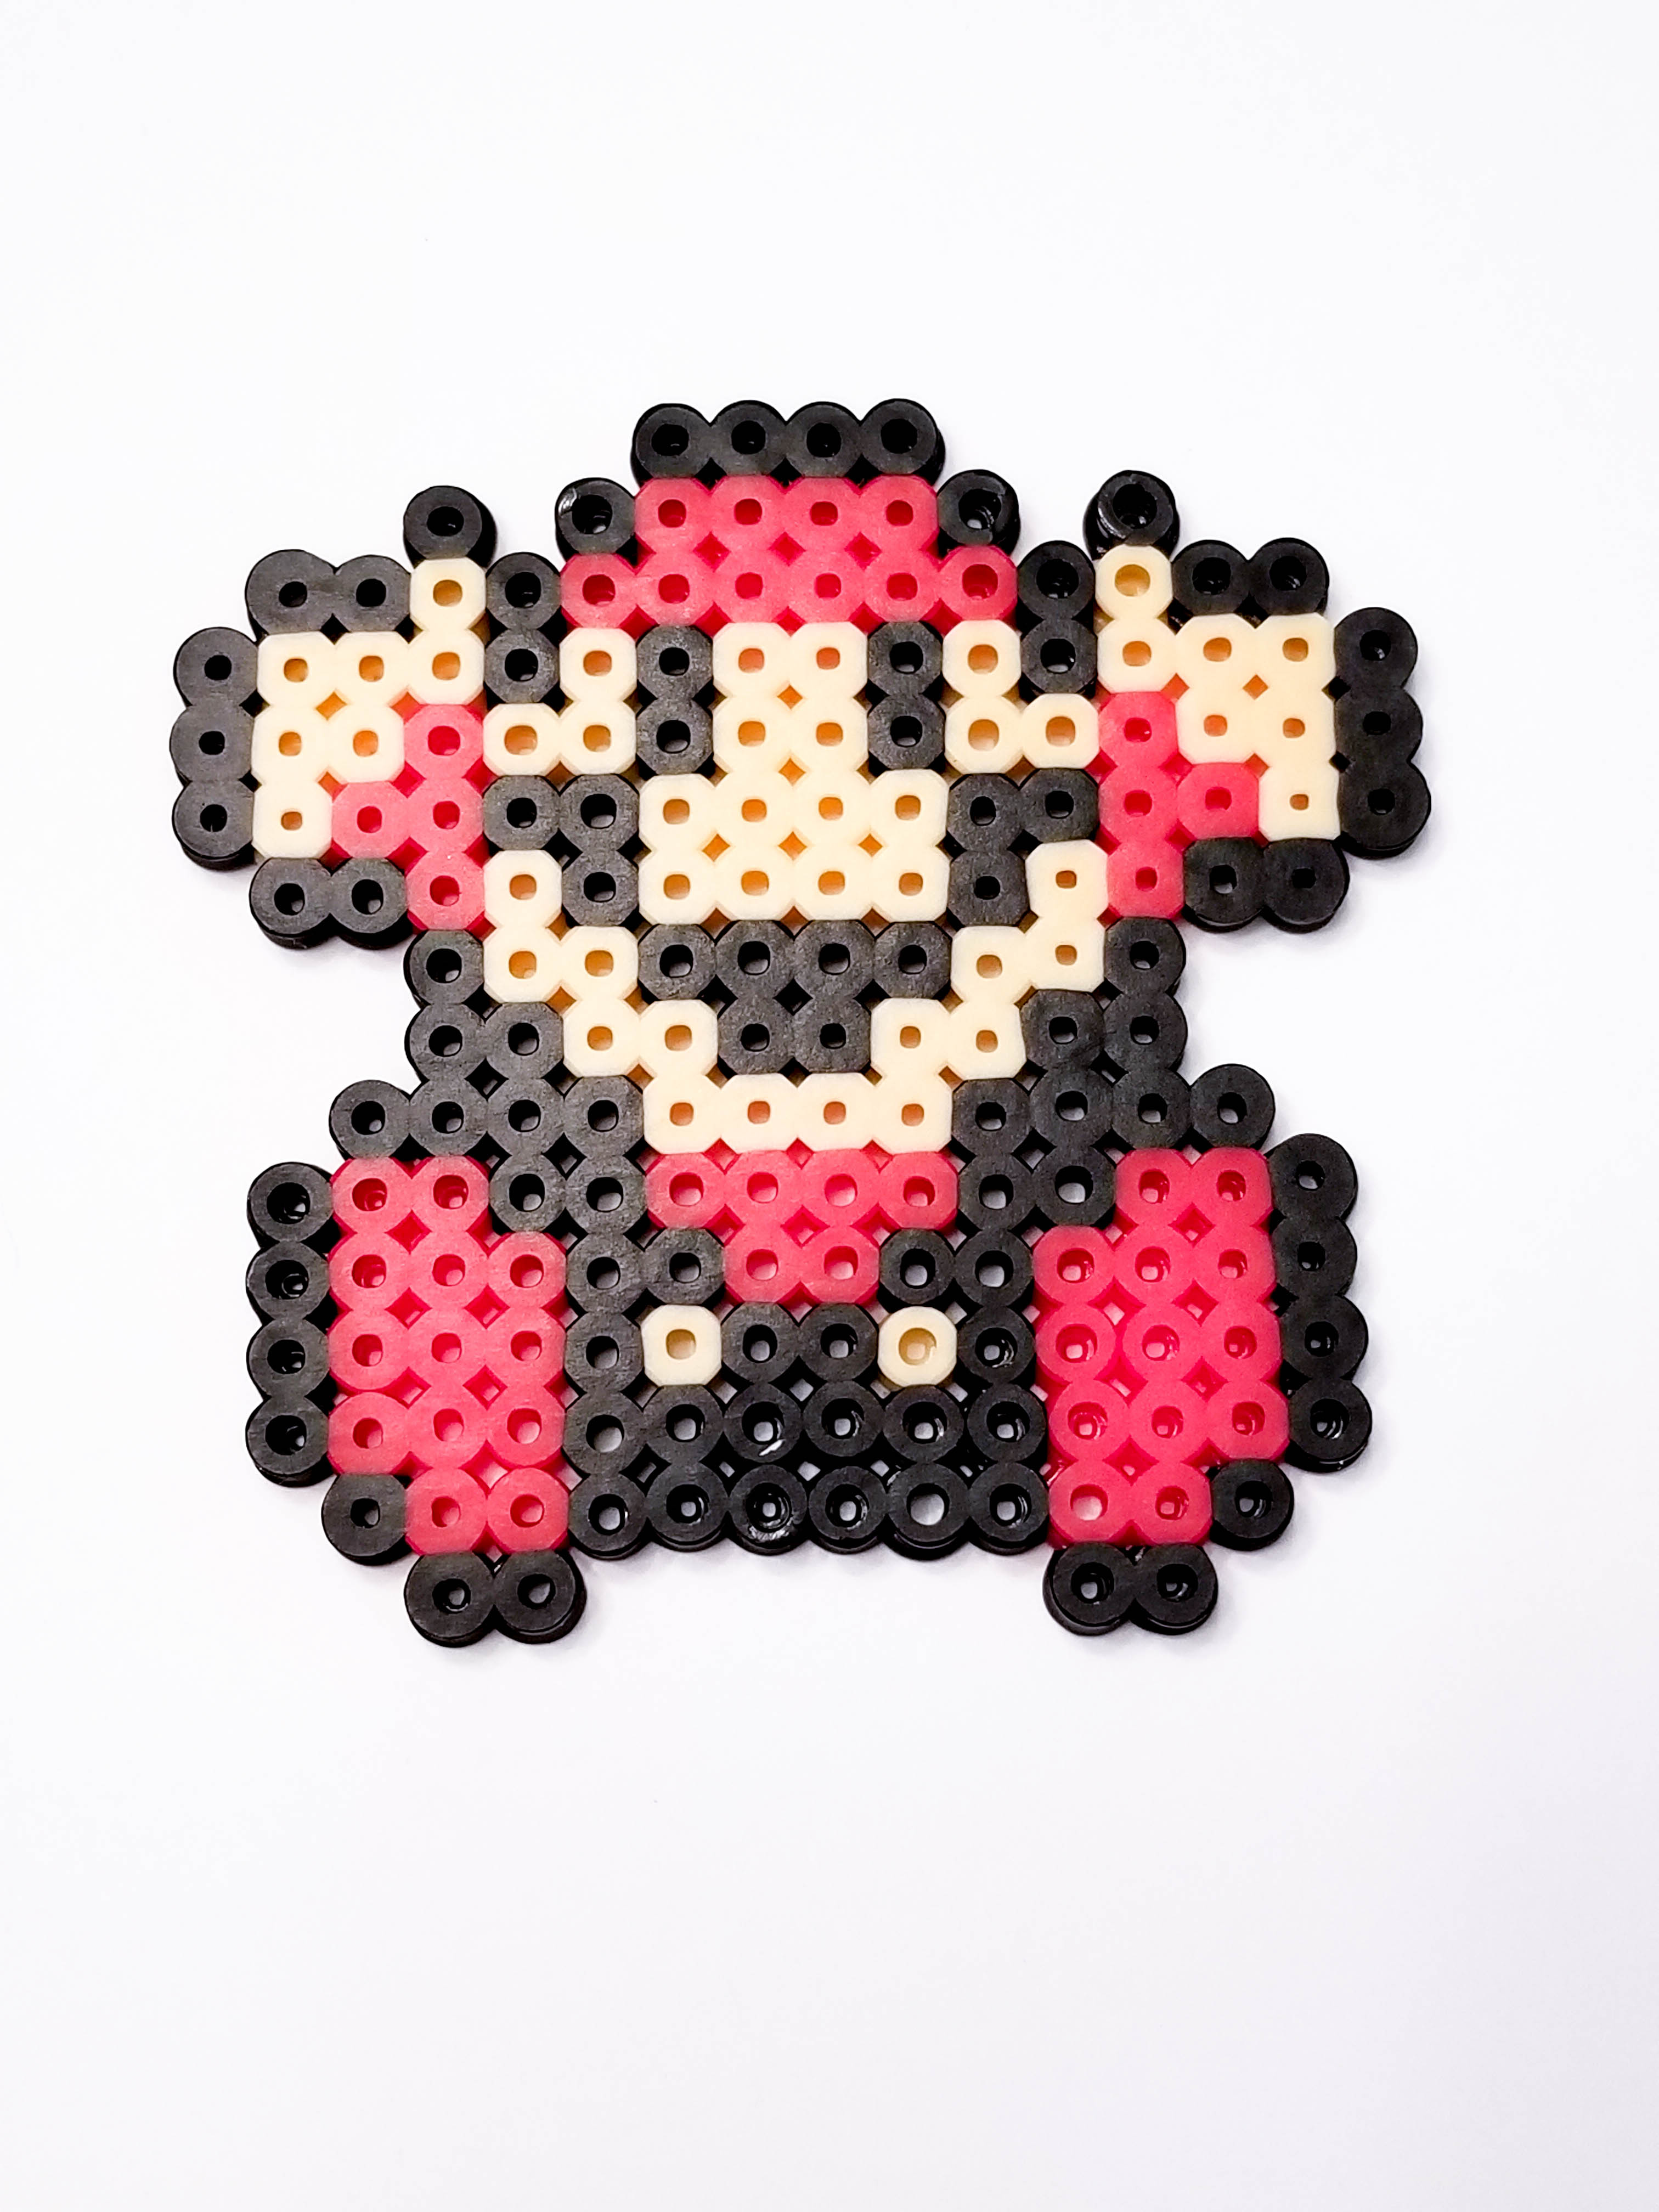 Mini Mario You Lose Bead Sprite Pixel Art Piece A Little Twist Designs Online Store Powered By Storenvy Man holding lamp illustration, fantasy art, pixel art, super mario, super mario bros. mini mario you lose bead sprite pixel